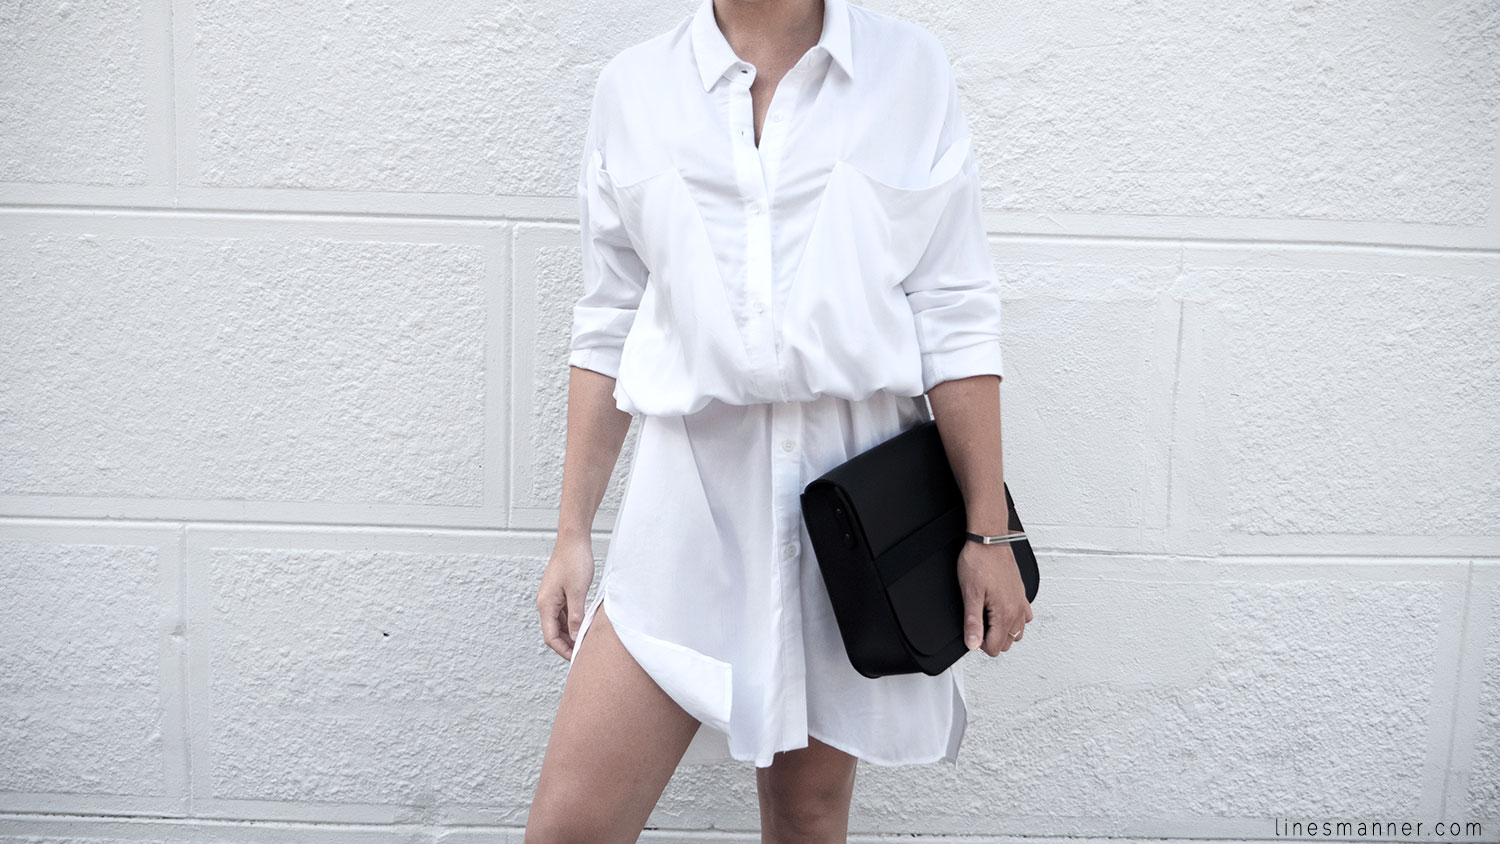 Lines-Manner-Whiteout-Fashion-Minimal-Clean-Fresh-Brigthly-All_White-Monochrome-Immaculate-Trend-Style-Sleek-Slouchy-Details-White_Shirt-Transeasonal-Dressing-Outfit-7